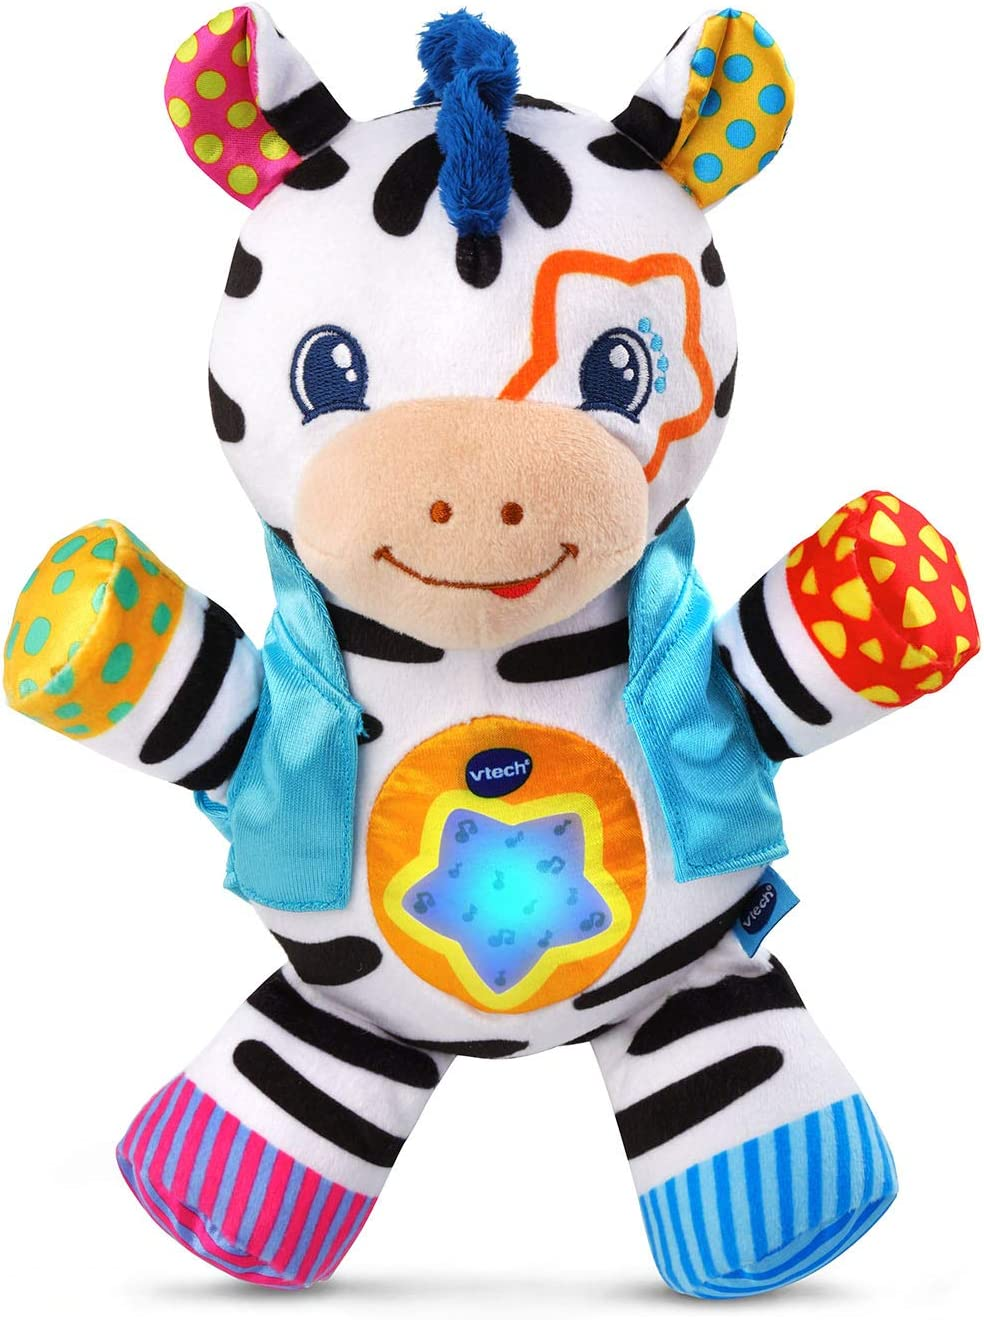 VTech Lights & Stripes Zebra, Multicolor, Great Gift for Kids, Toddlers, Toy for Boys and Girls, Ages Infant, 1, 2